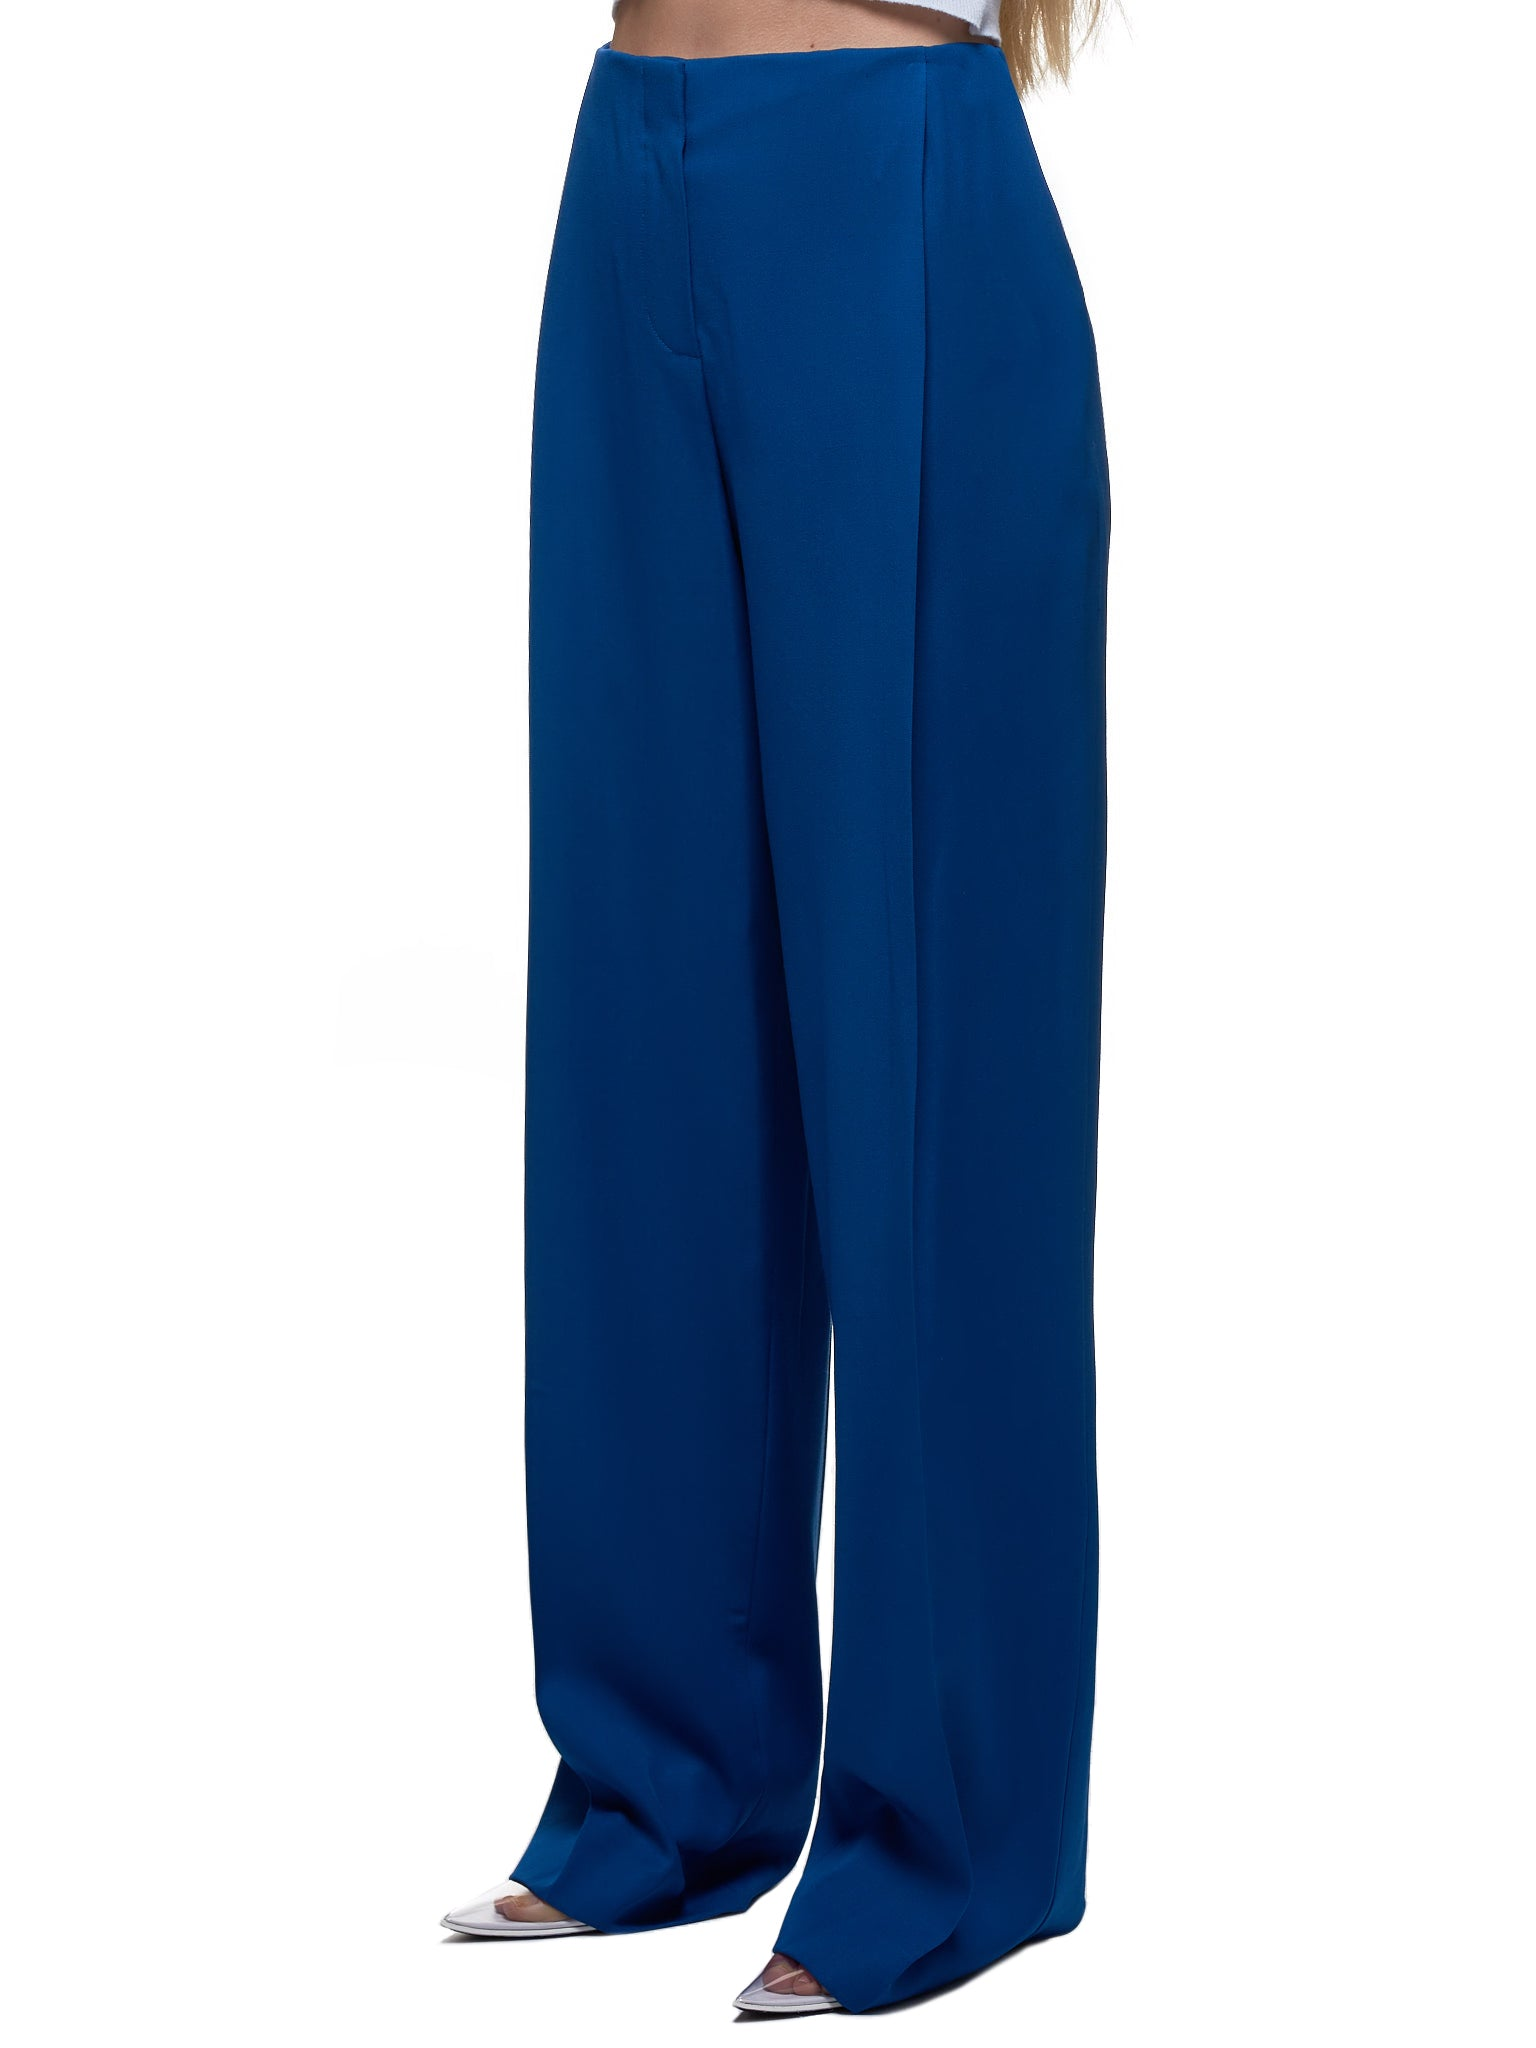 Nina Ricci Pants - Hlorenzo Side